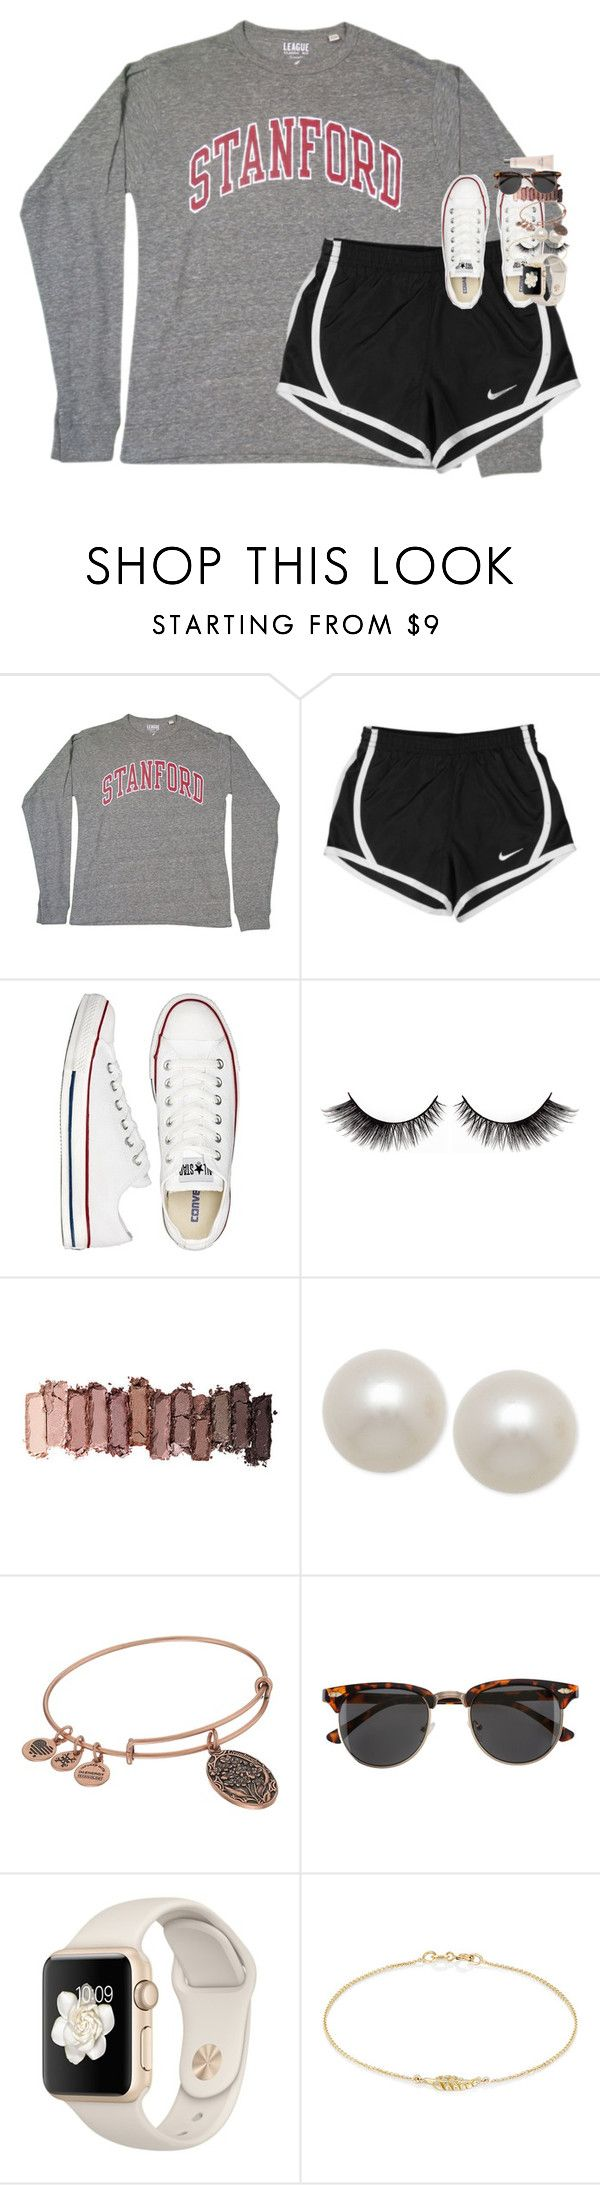 """some people are worth melting for"" by classynsouthern ❤ liked on Polyvore featuring NIKE, Converse, Urban Decay, Honora, Alex and Ani, H&M, Jennifer Meyer Jewelry and Jimmy Choo"